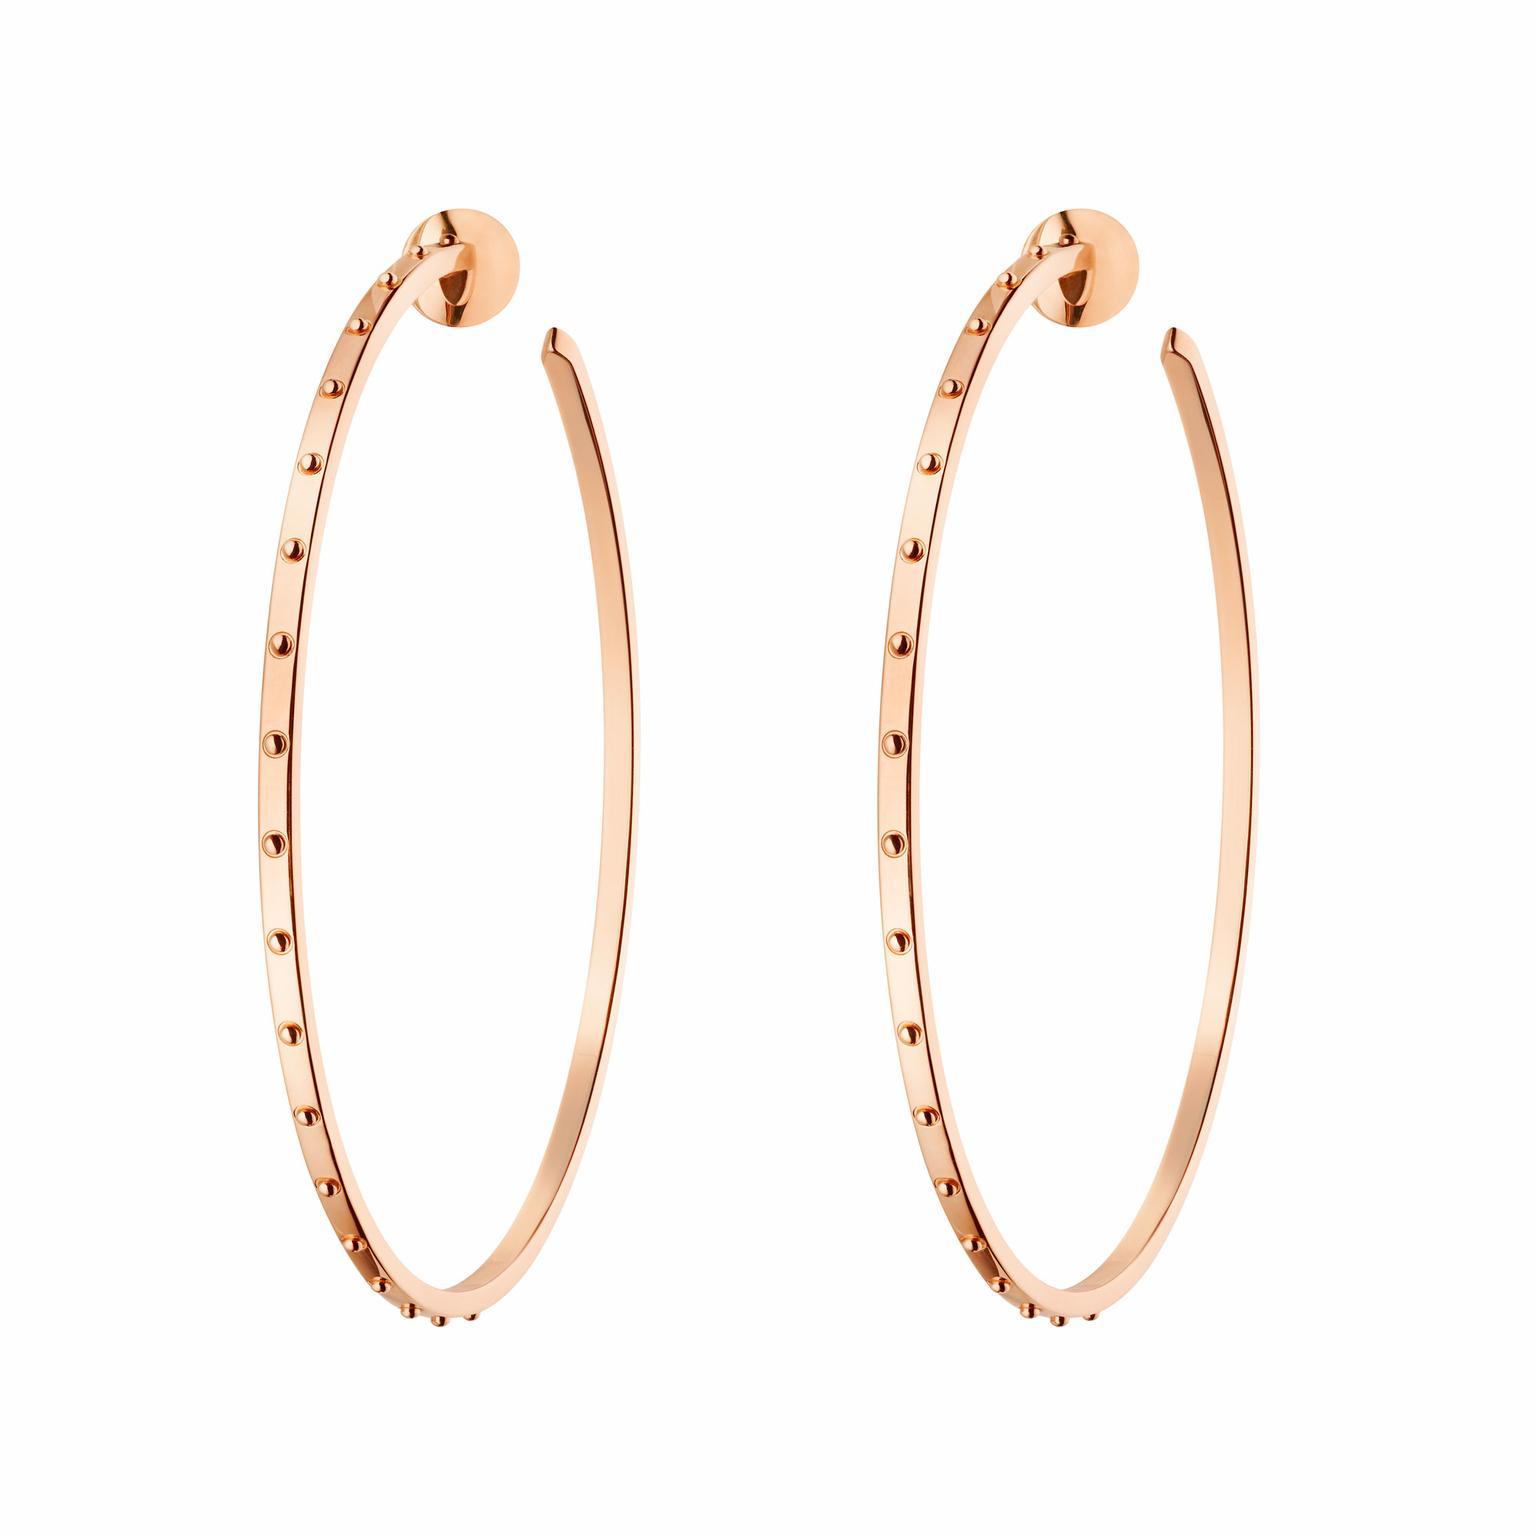 Louis Vuitton Emprise pink gold large hoop earrings